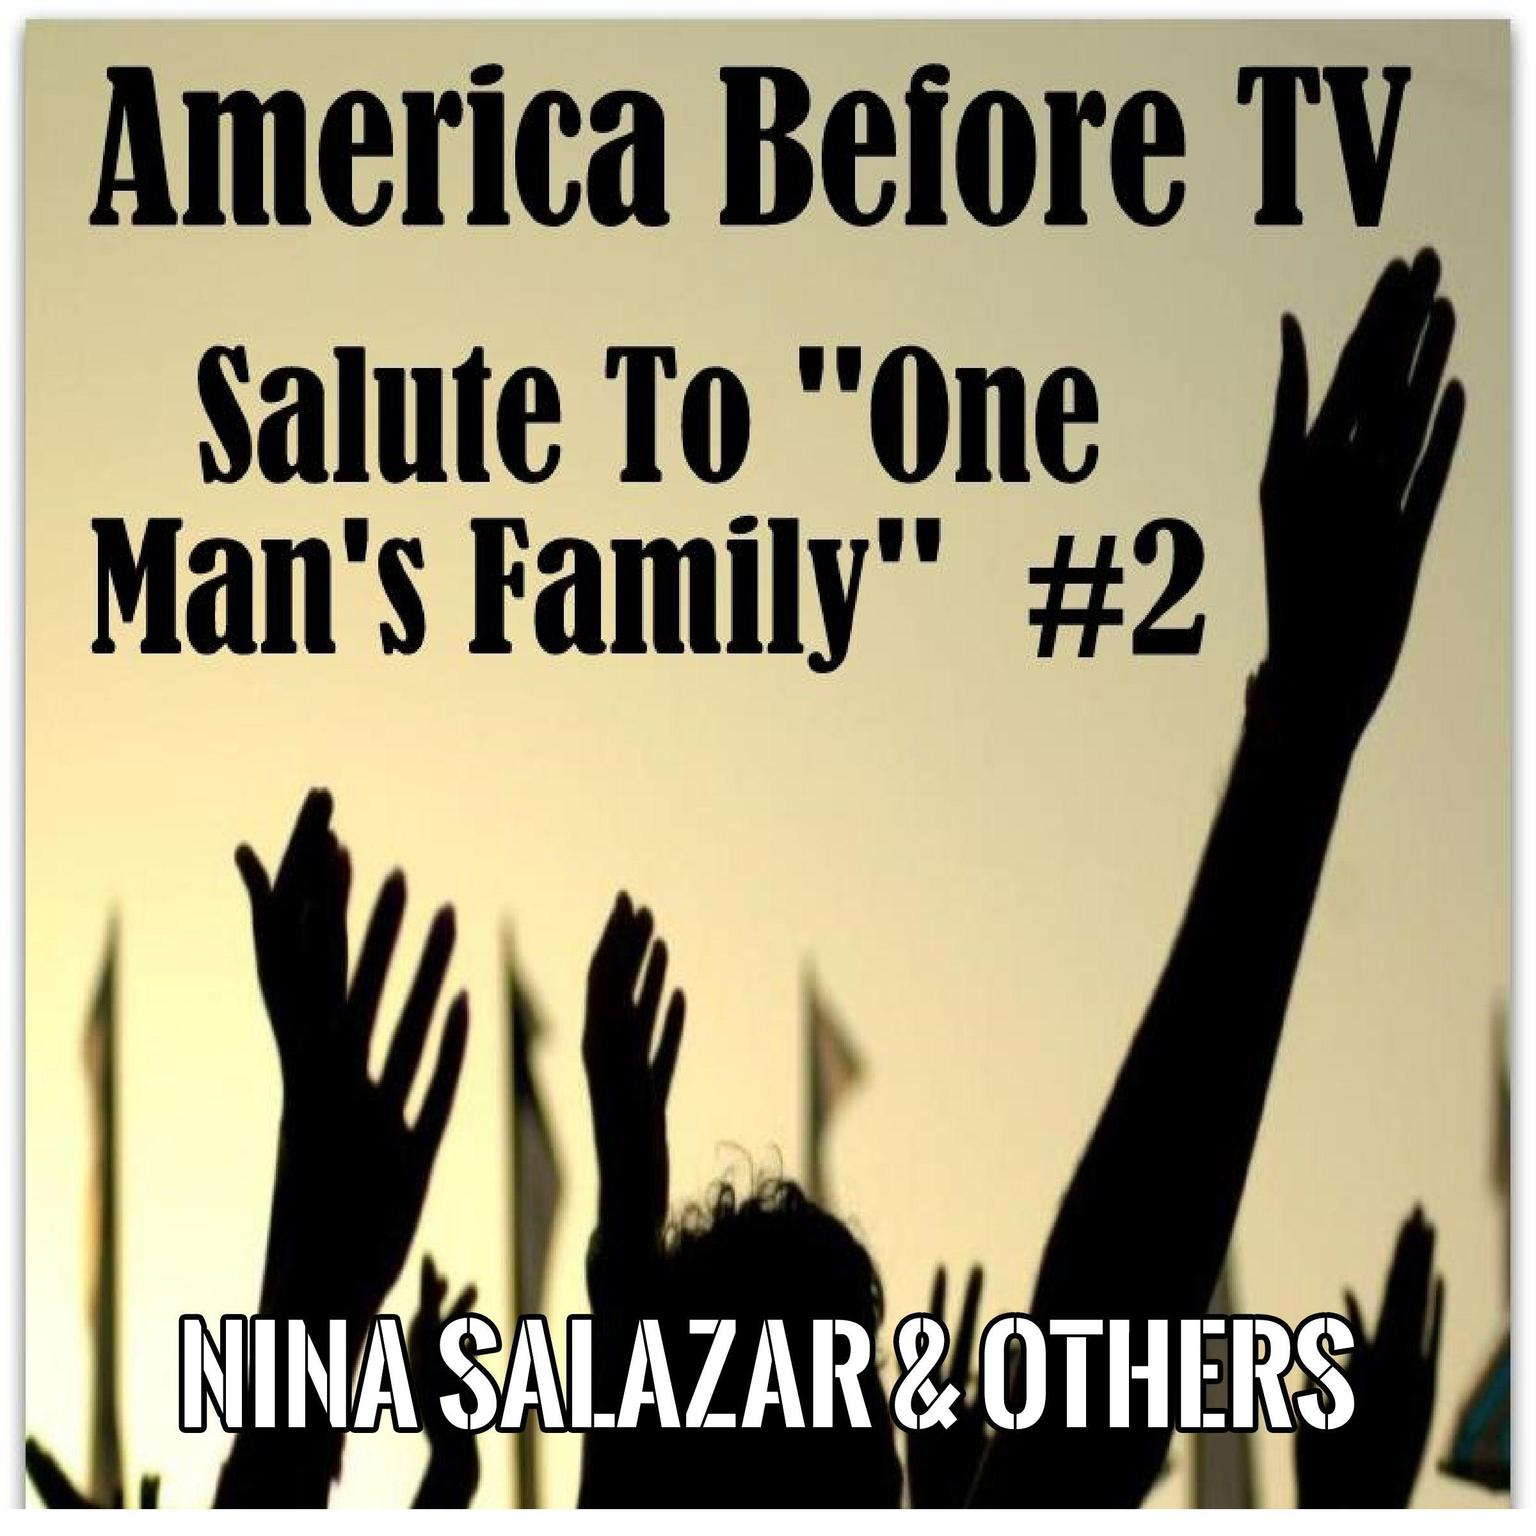 Printable America Before TV - Salute To ''One Man's Family''  #2 Audiobook Cover Art